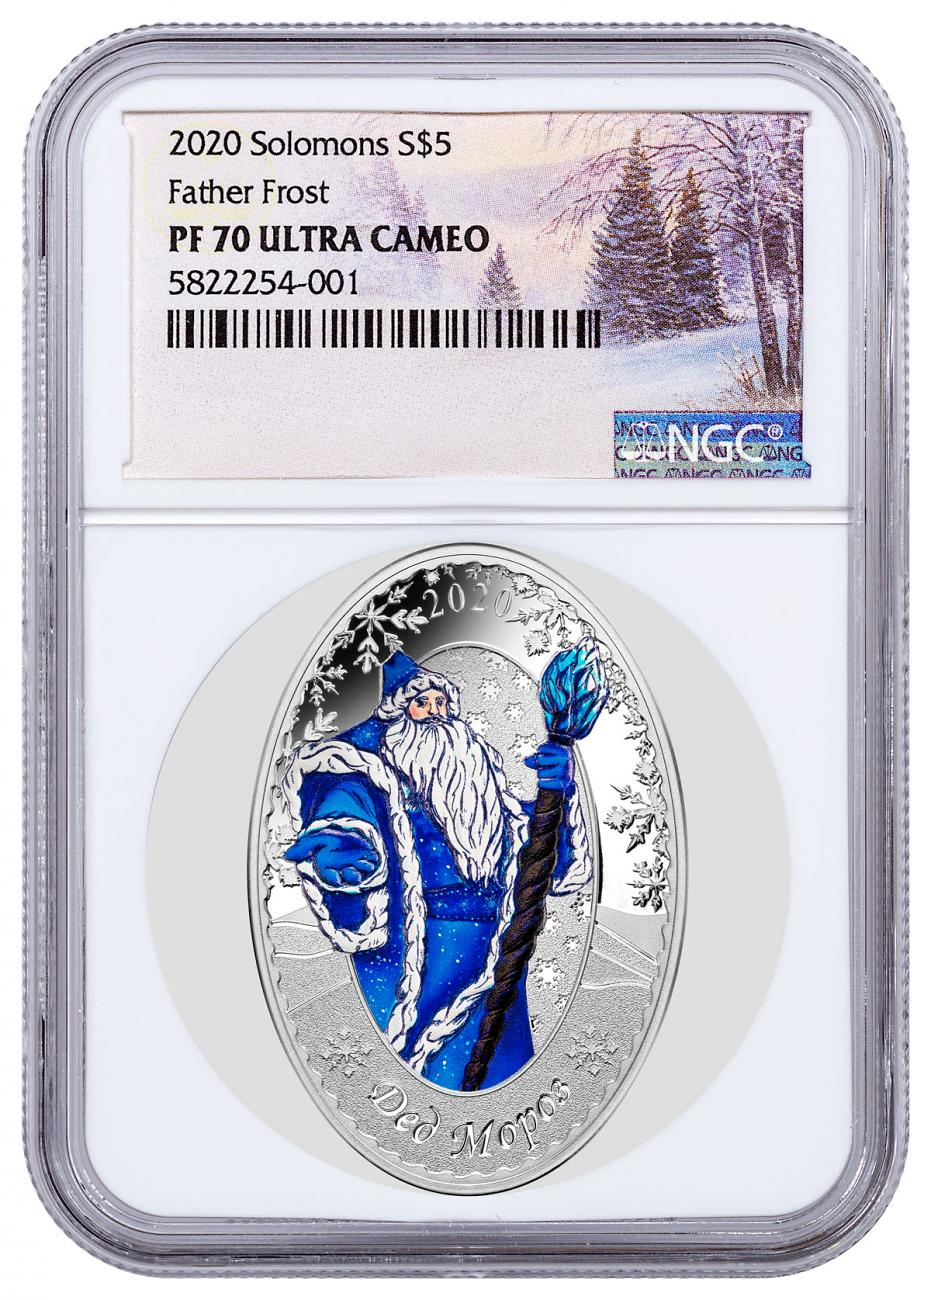 2020 Solomon Islands Father Frost Oval-Shaped 1 oz Silver Proof $5 Coin NGC PF70 UC